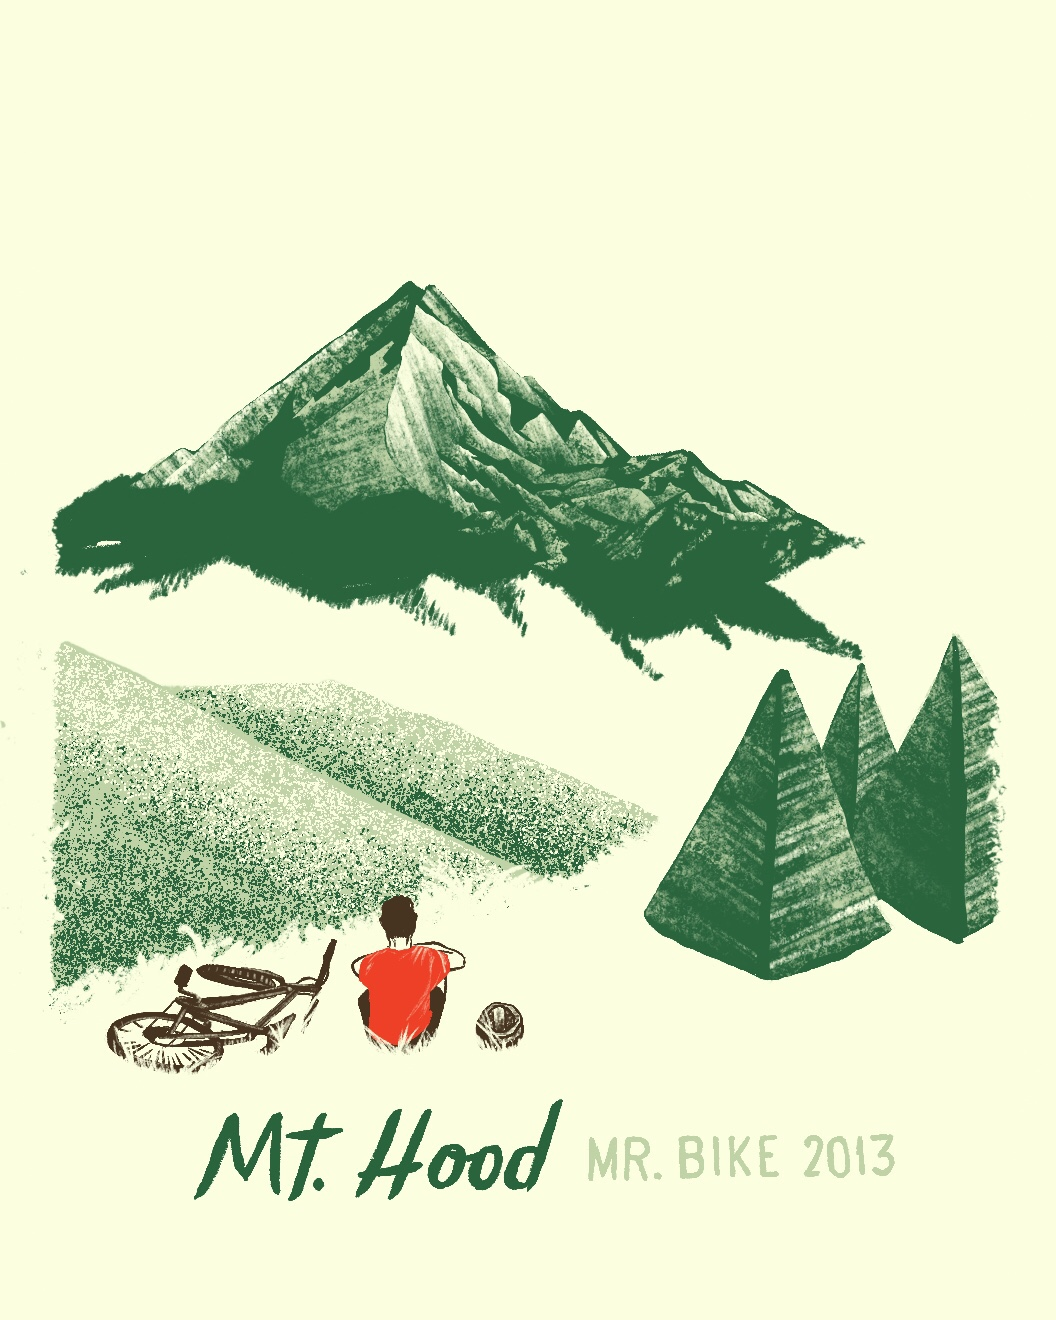 Mount Hood biking trip illustration